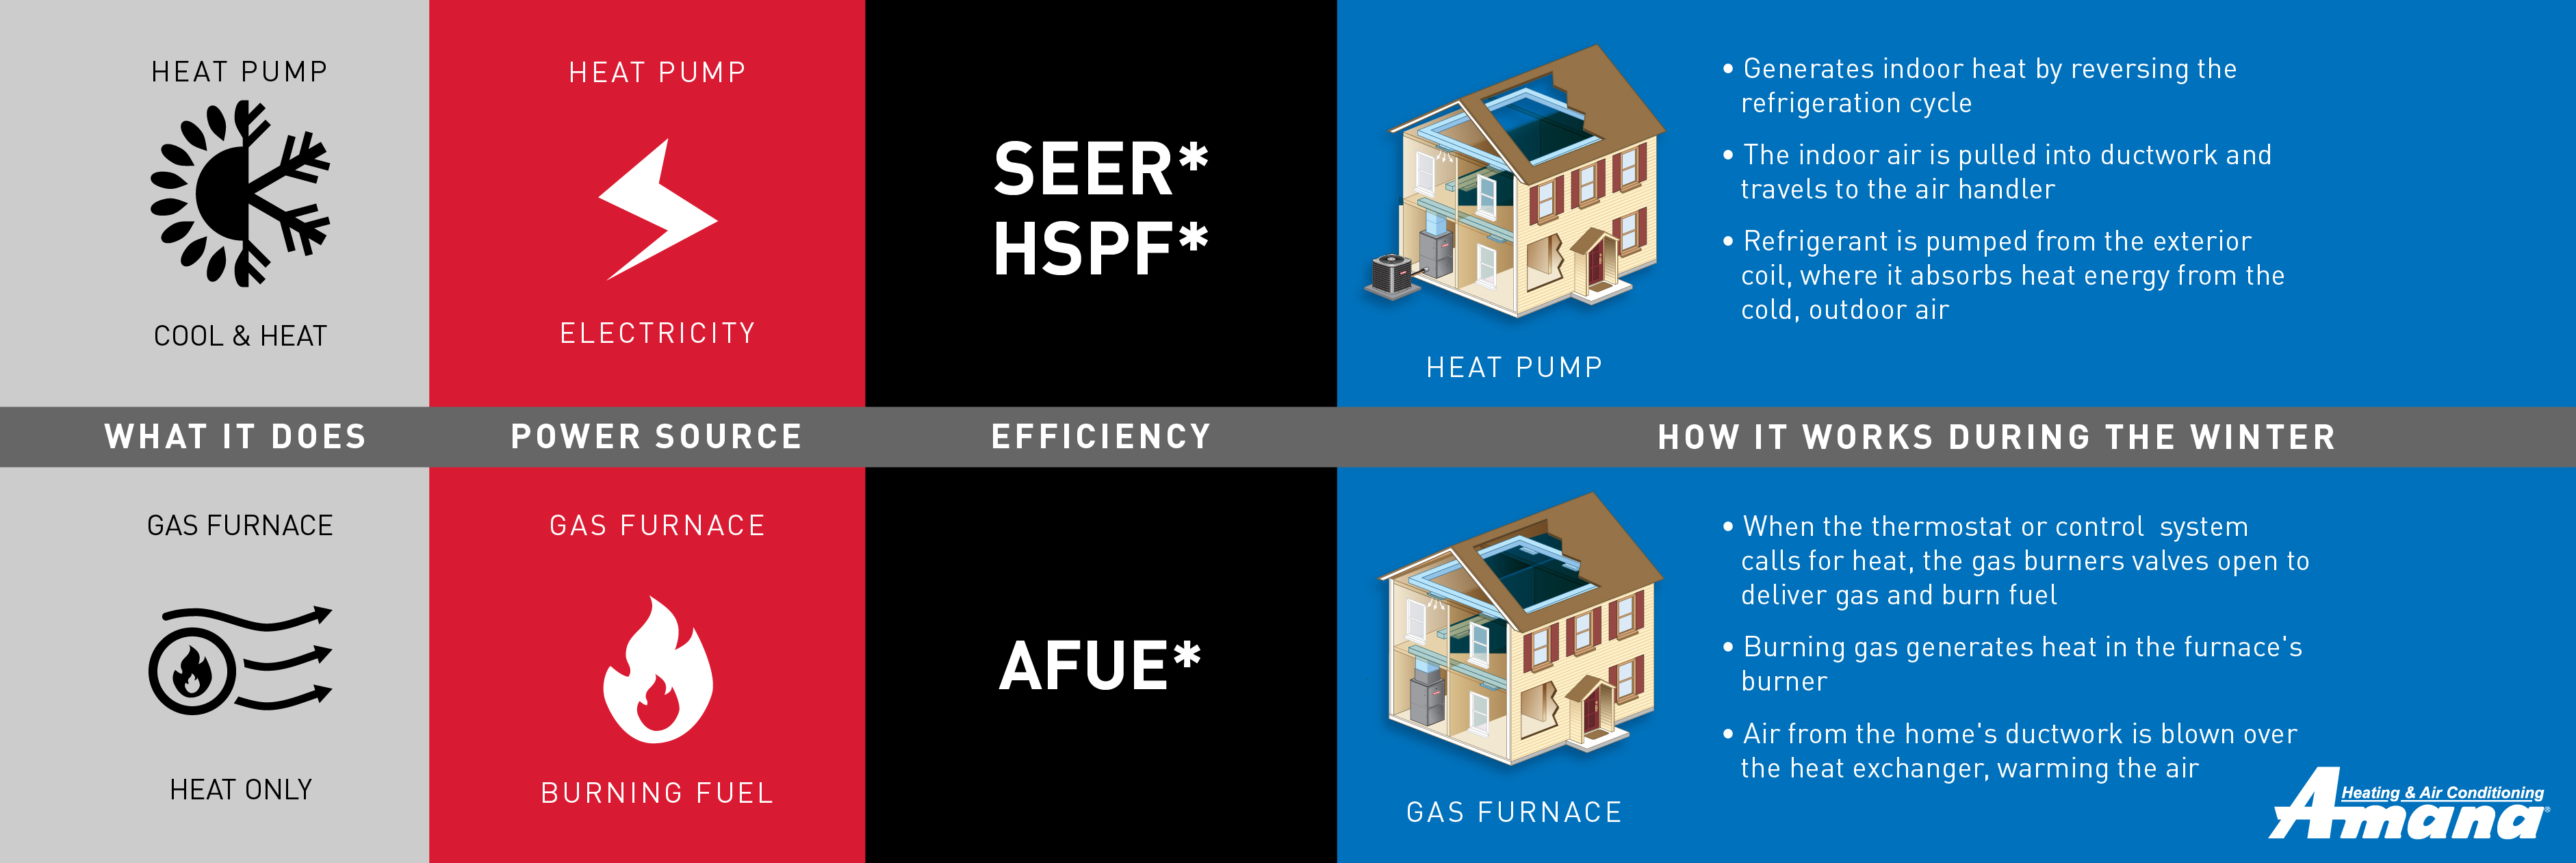 Heat Pump and Gas Furnace Comparison